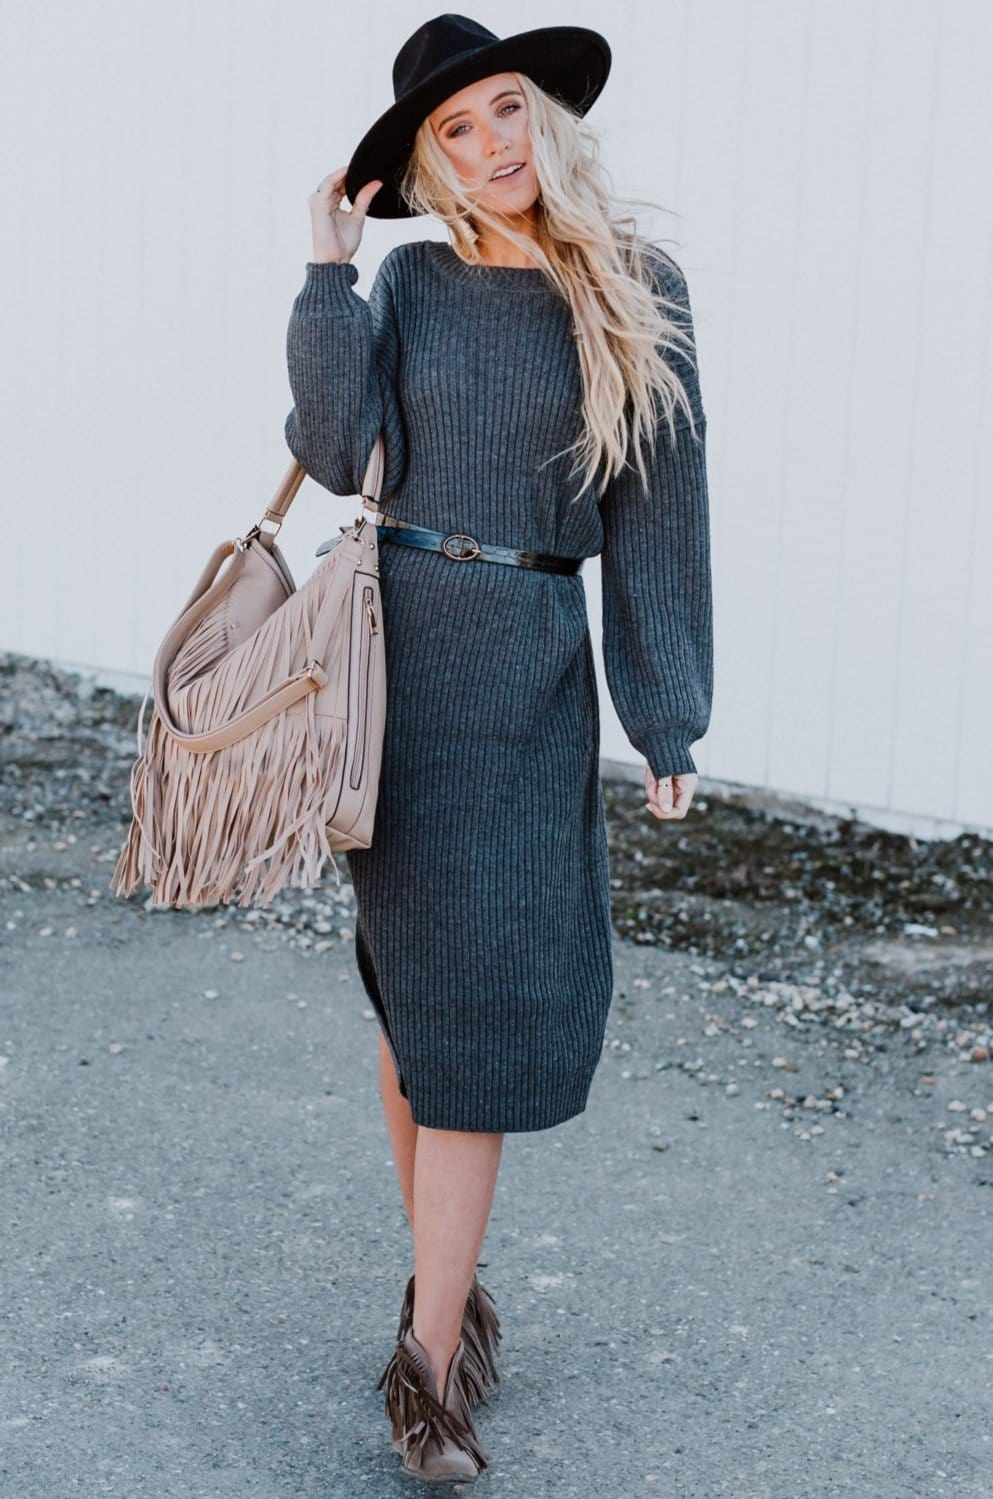 Image of Everly Sweater Dress - Charcoal